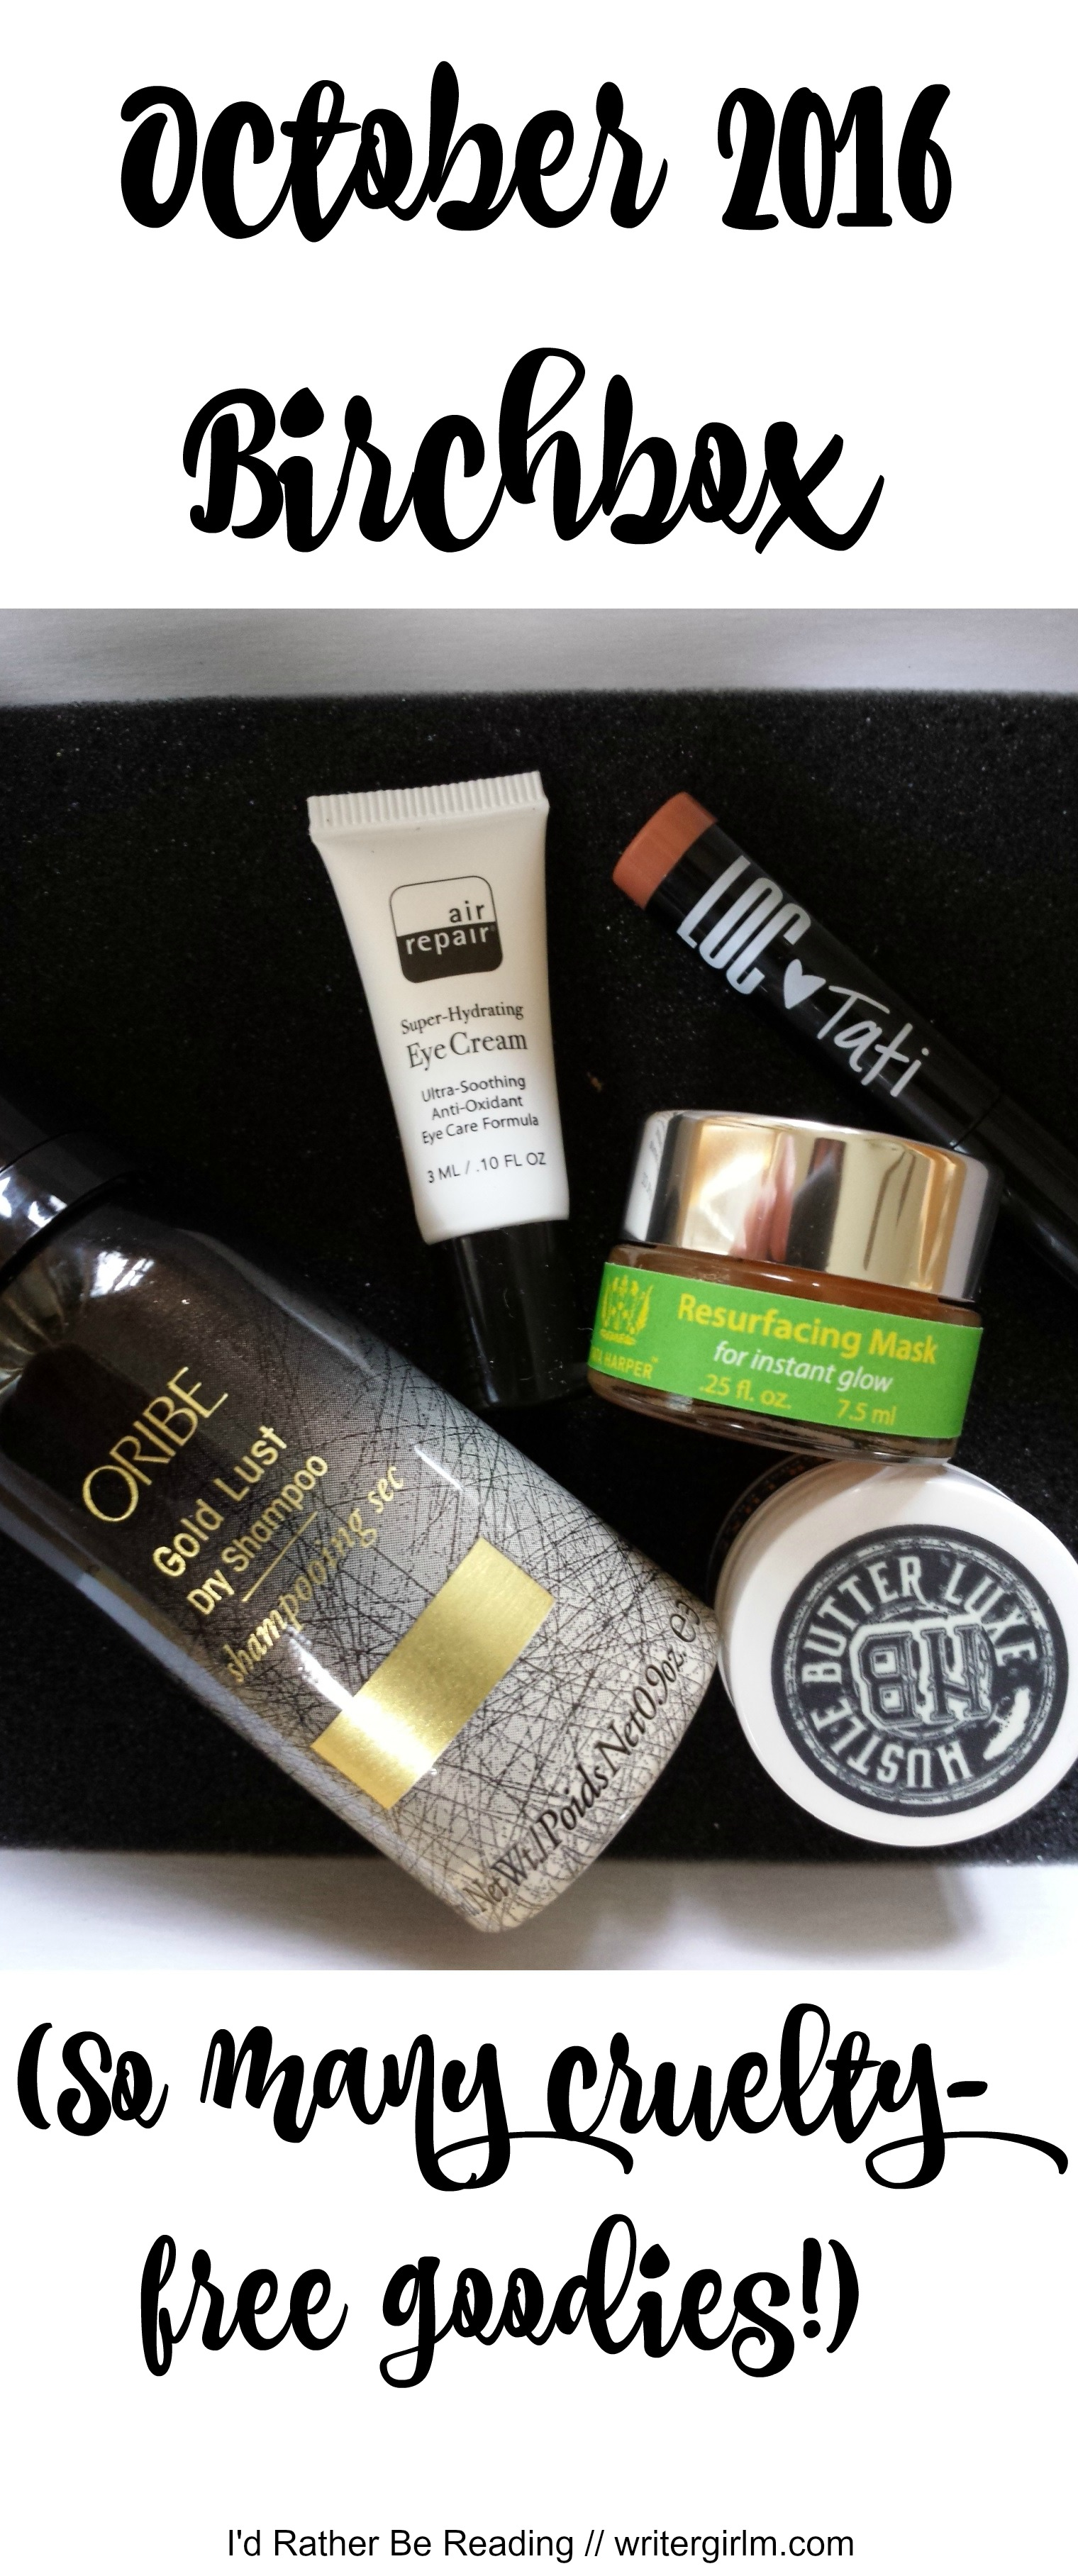 October 2016 Birchbox: so many cruelty-free goodies, from brands like Tata Harper, Oribe and Hustle Butter!